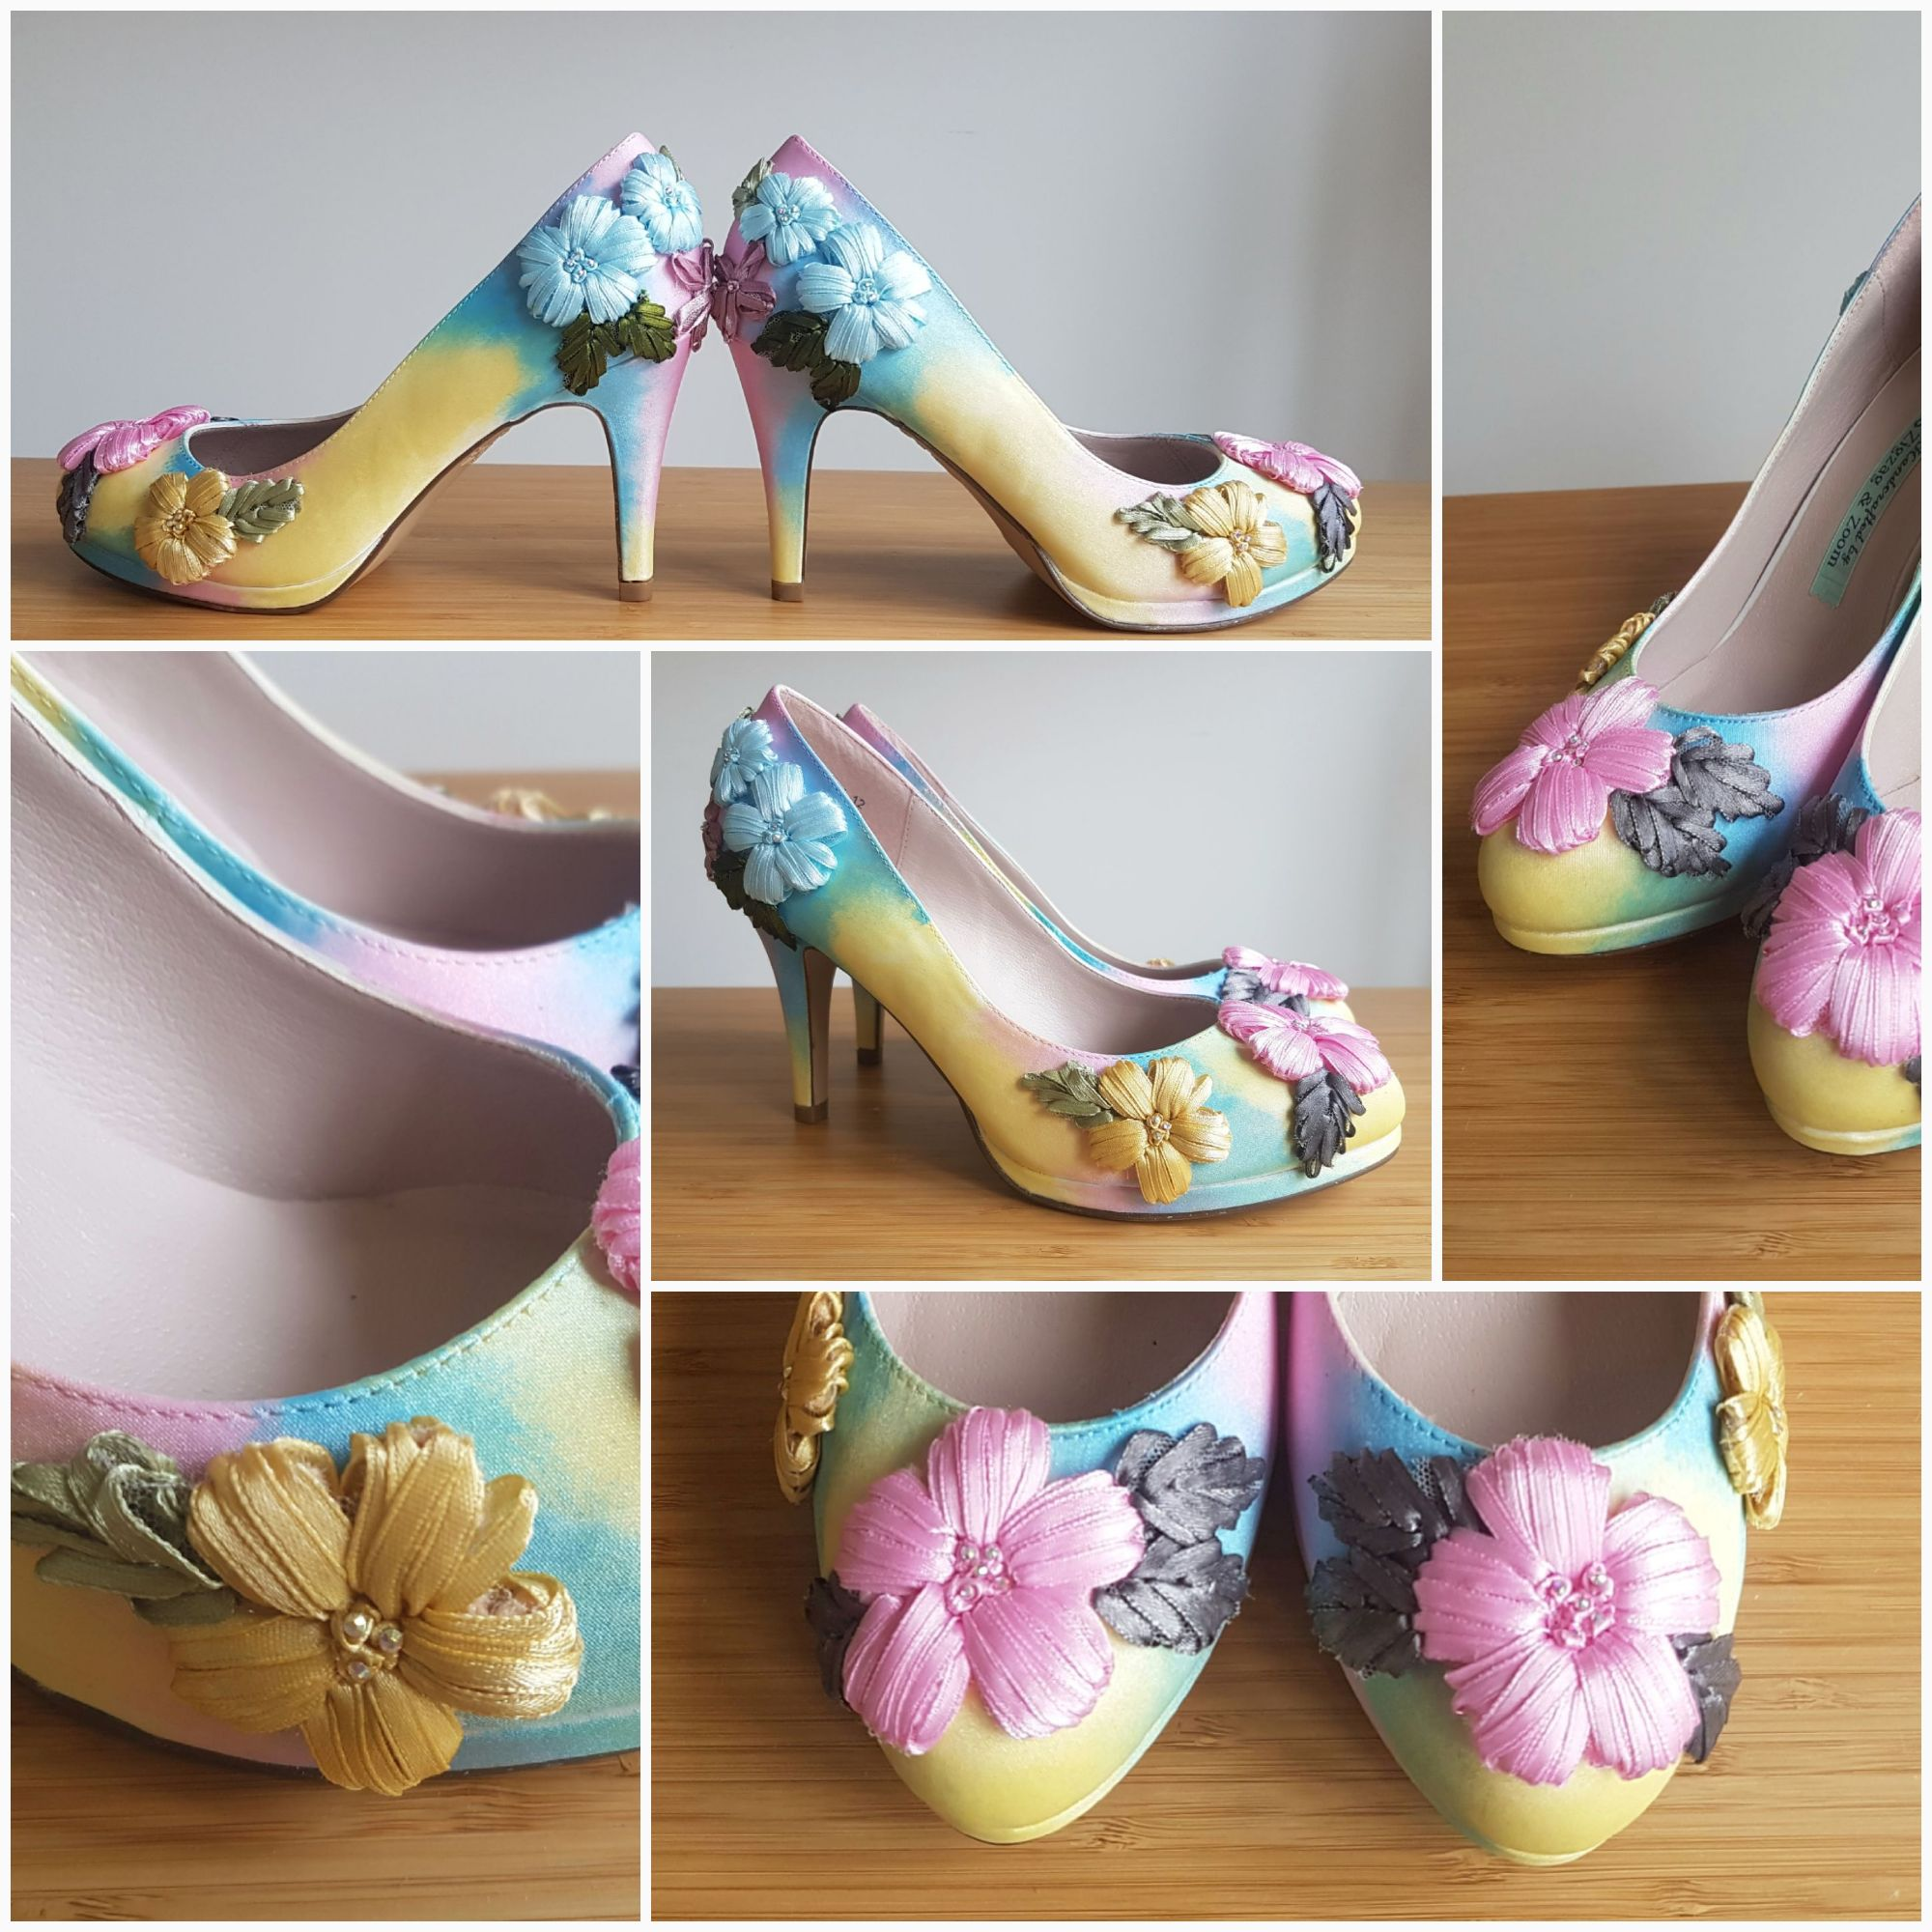 Handpainted pastel floral shoes